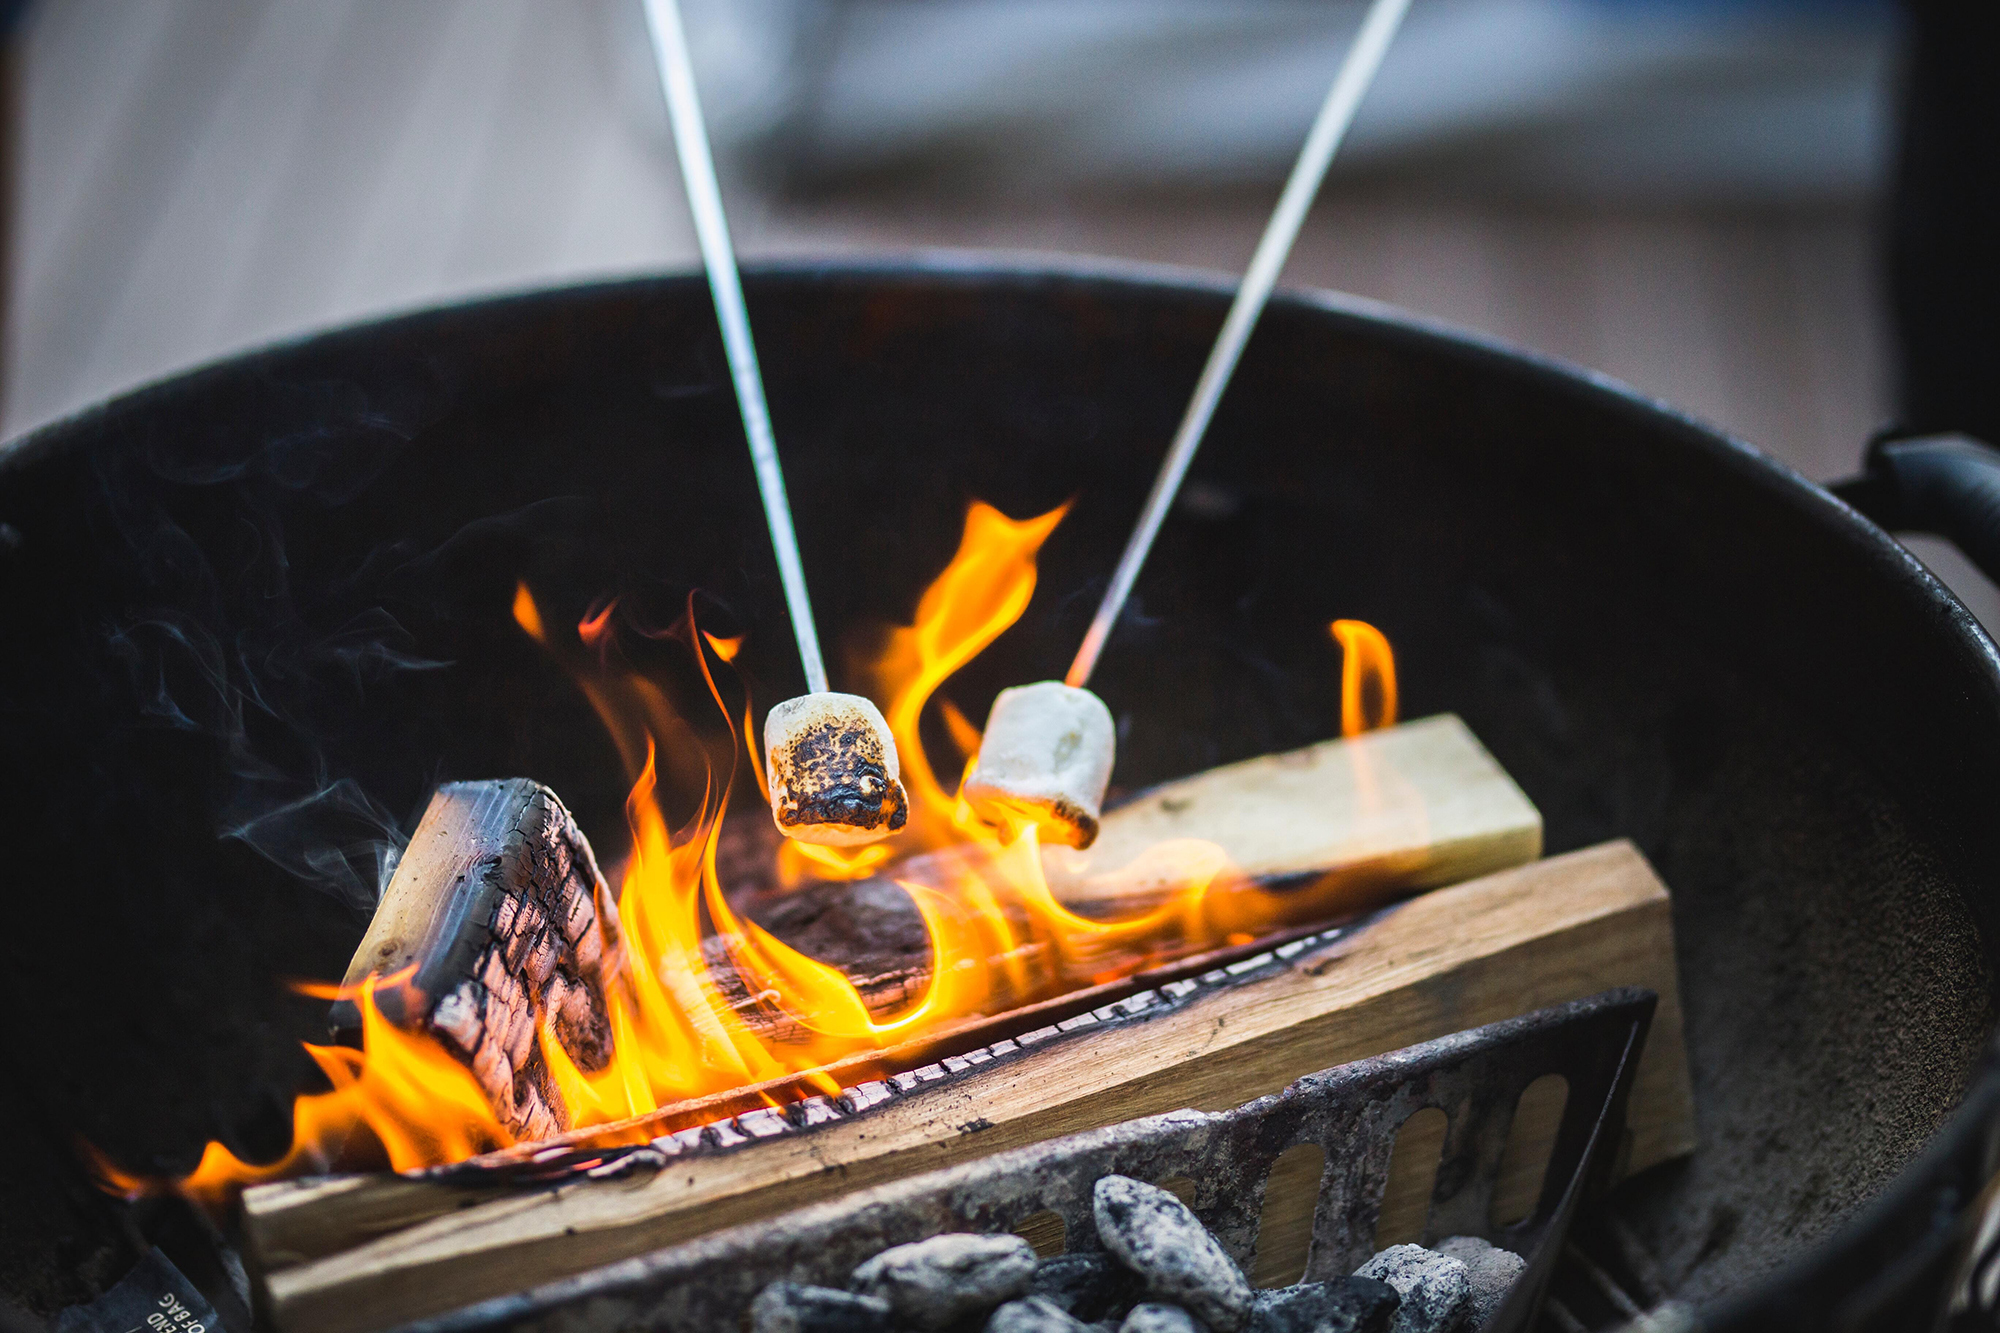 Top Fire Safety Tips to Stay Safe this Summer